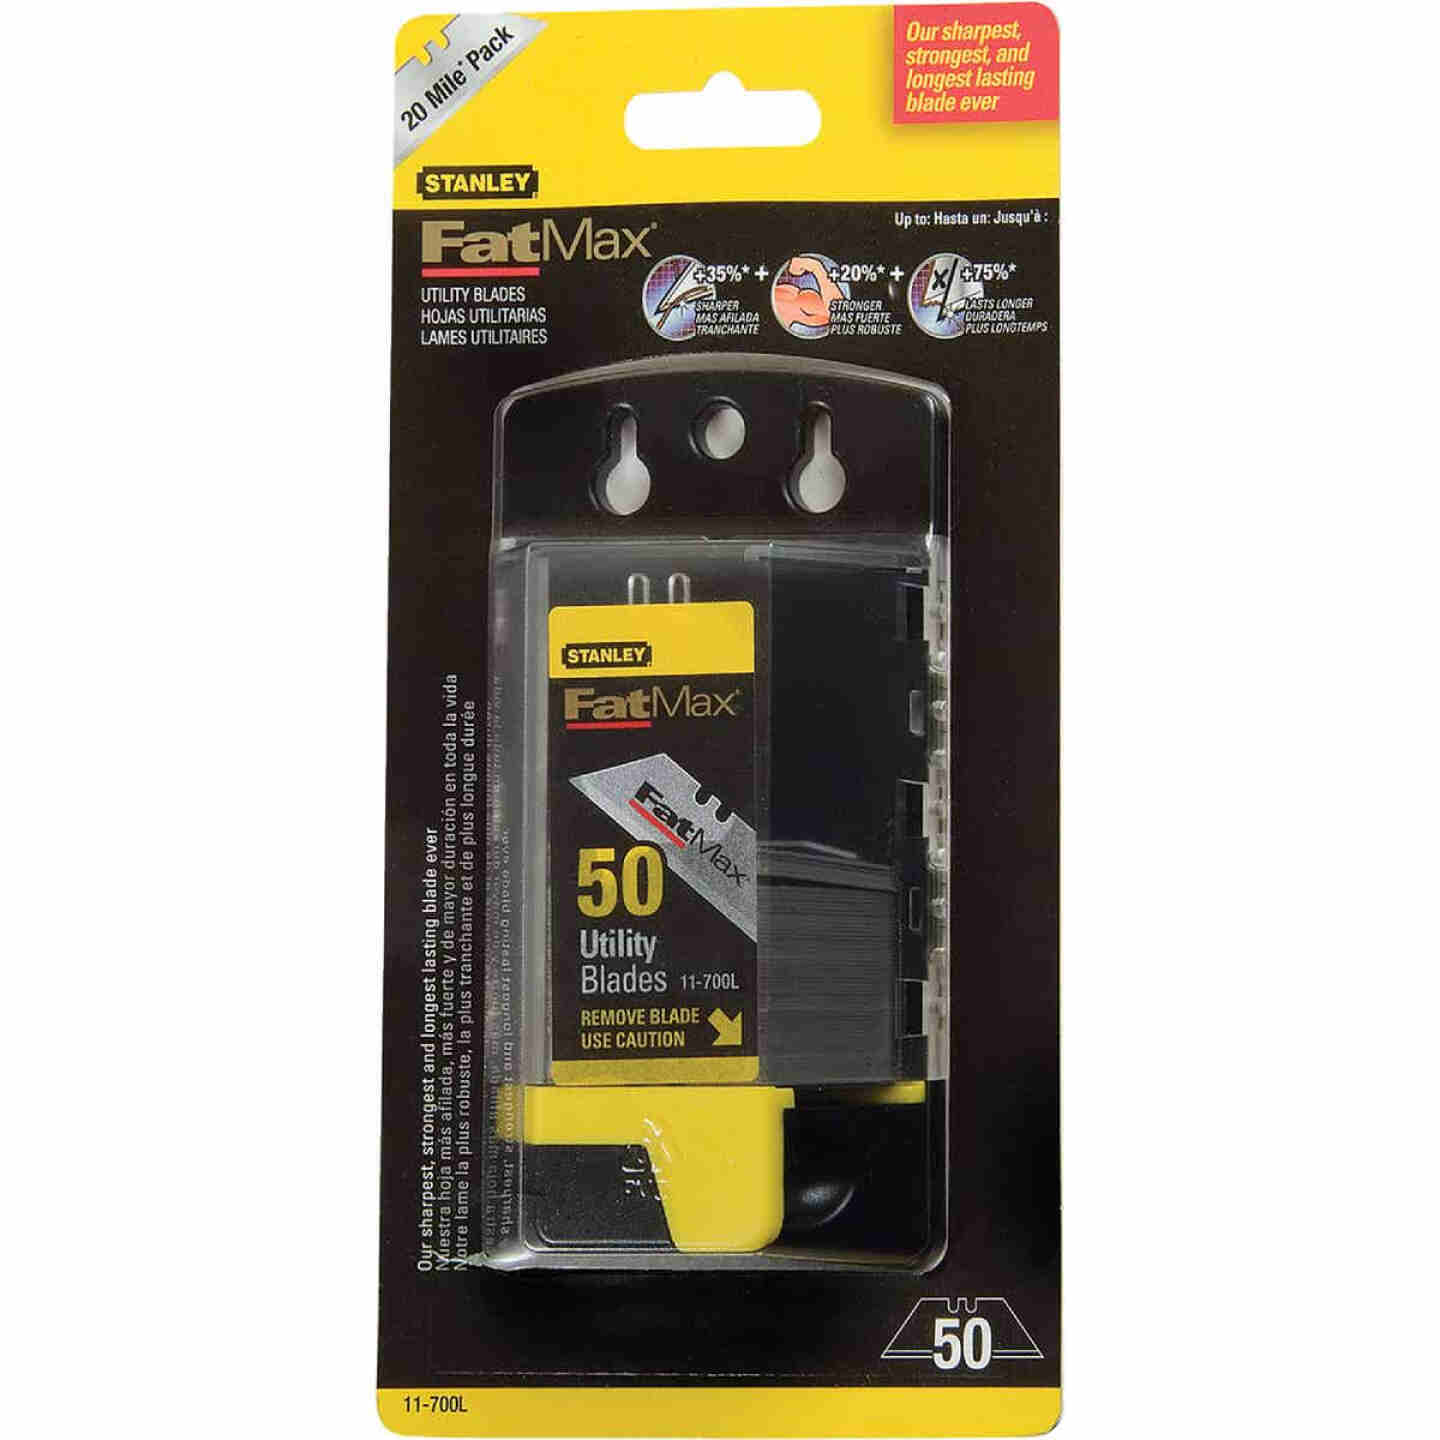 Stanley FatMax 2-Point 2-7/16 In. Utility Knife Blade (50-Pack) Image 2